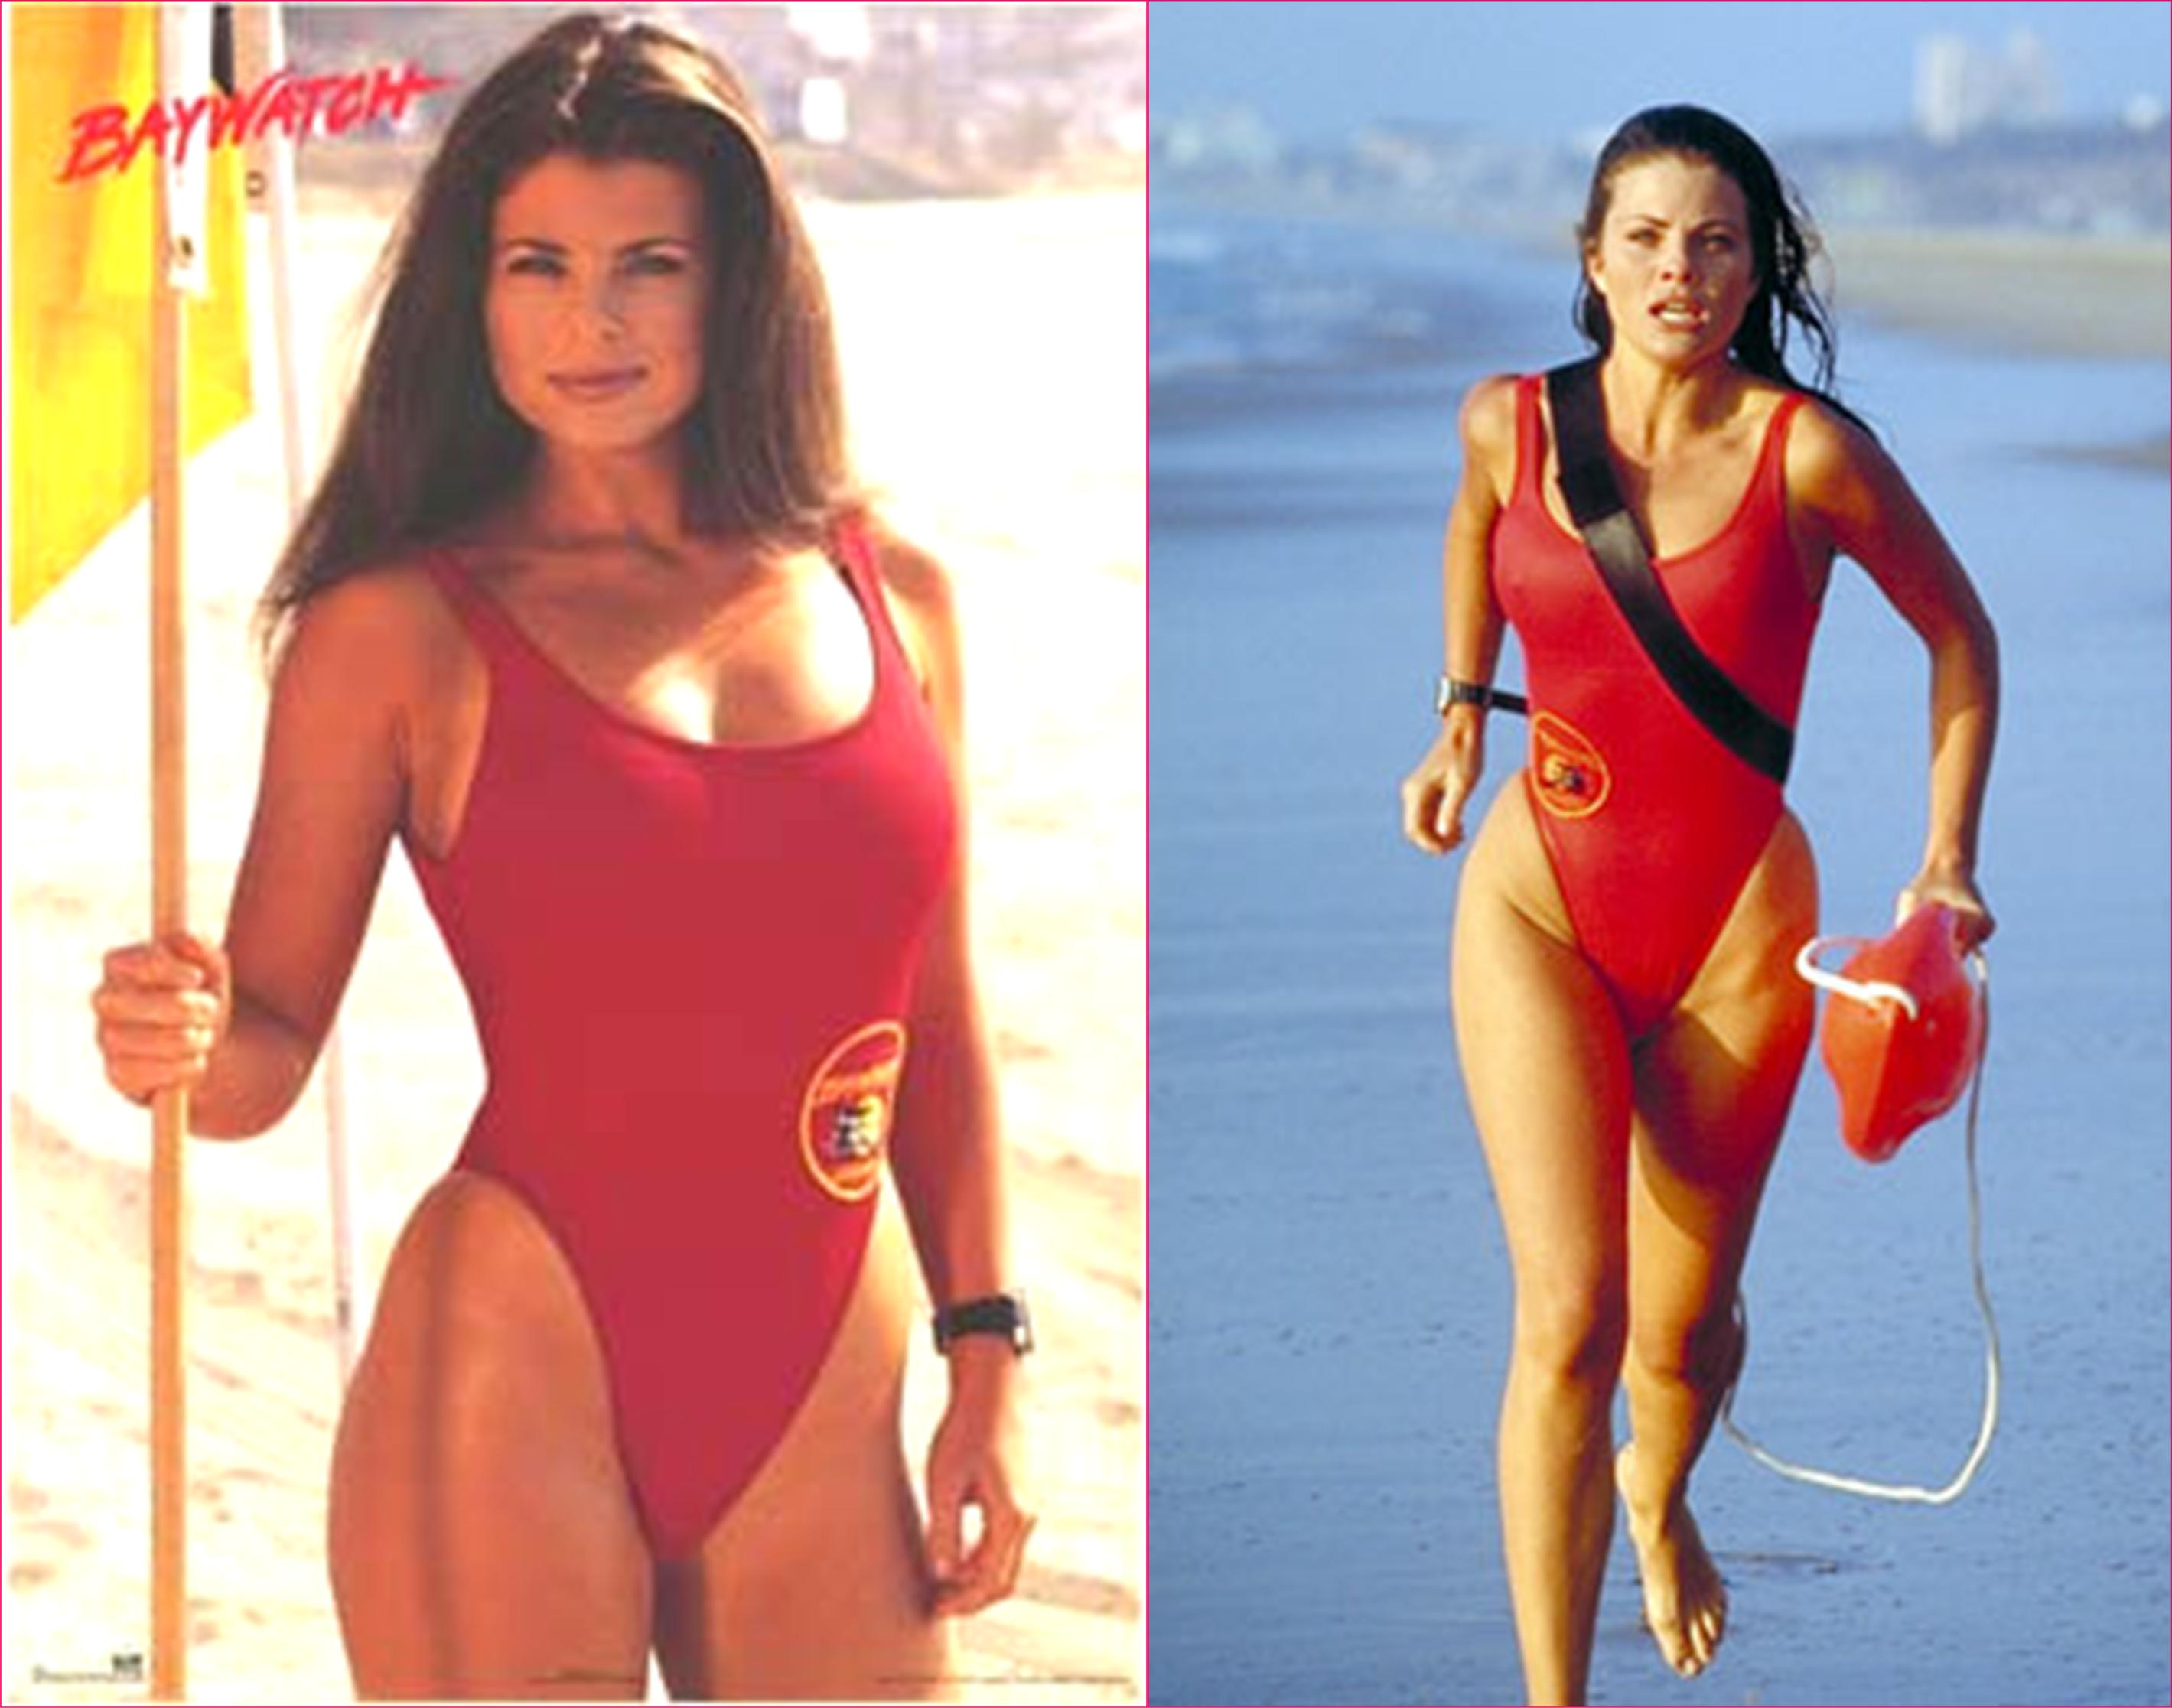 Baywatch bikini 2010 jelsoft enterprises ltd